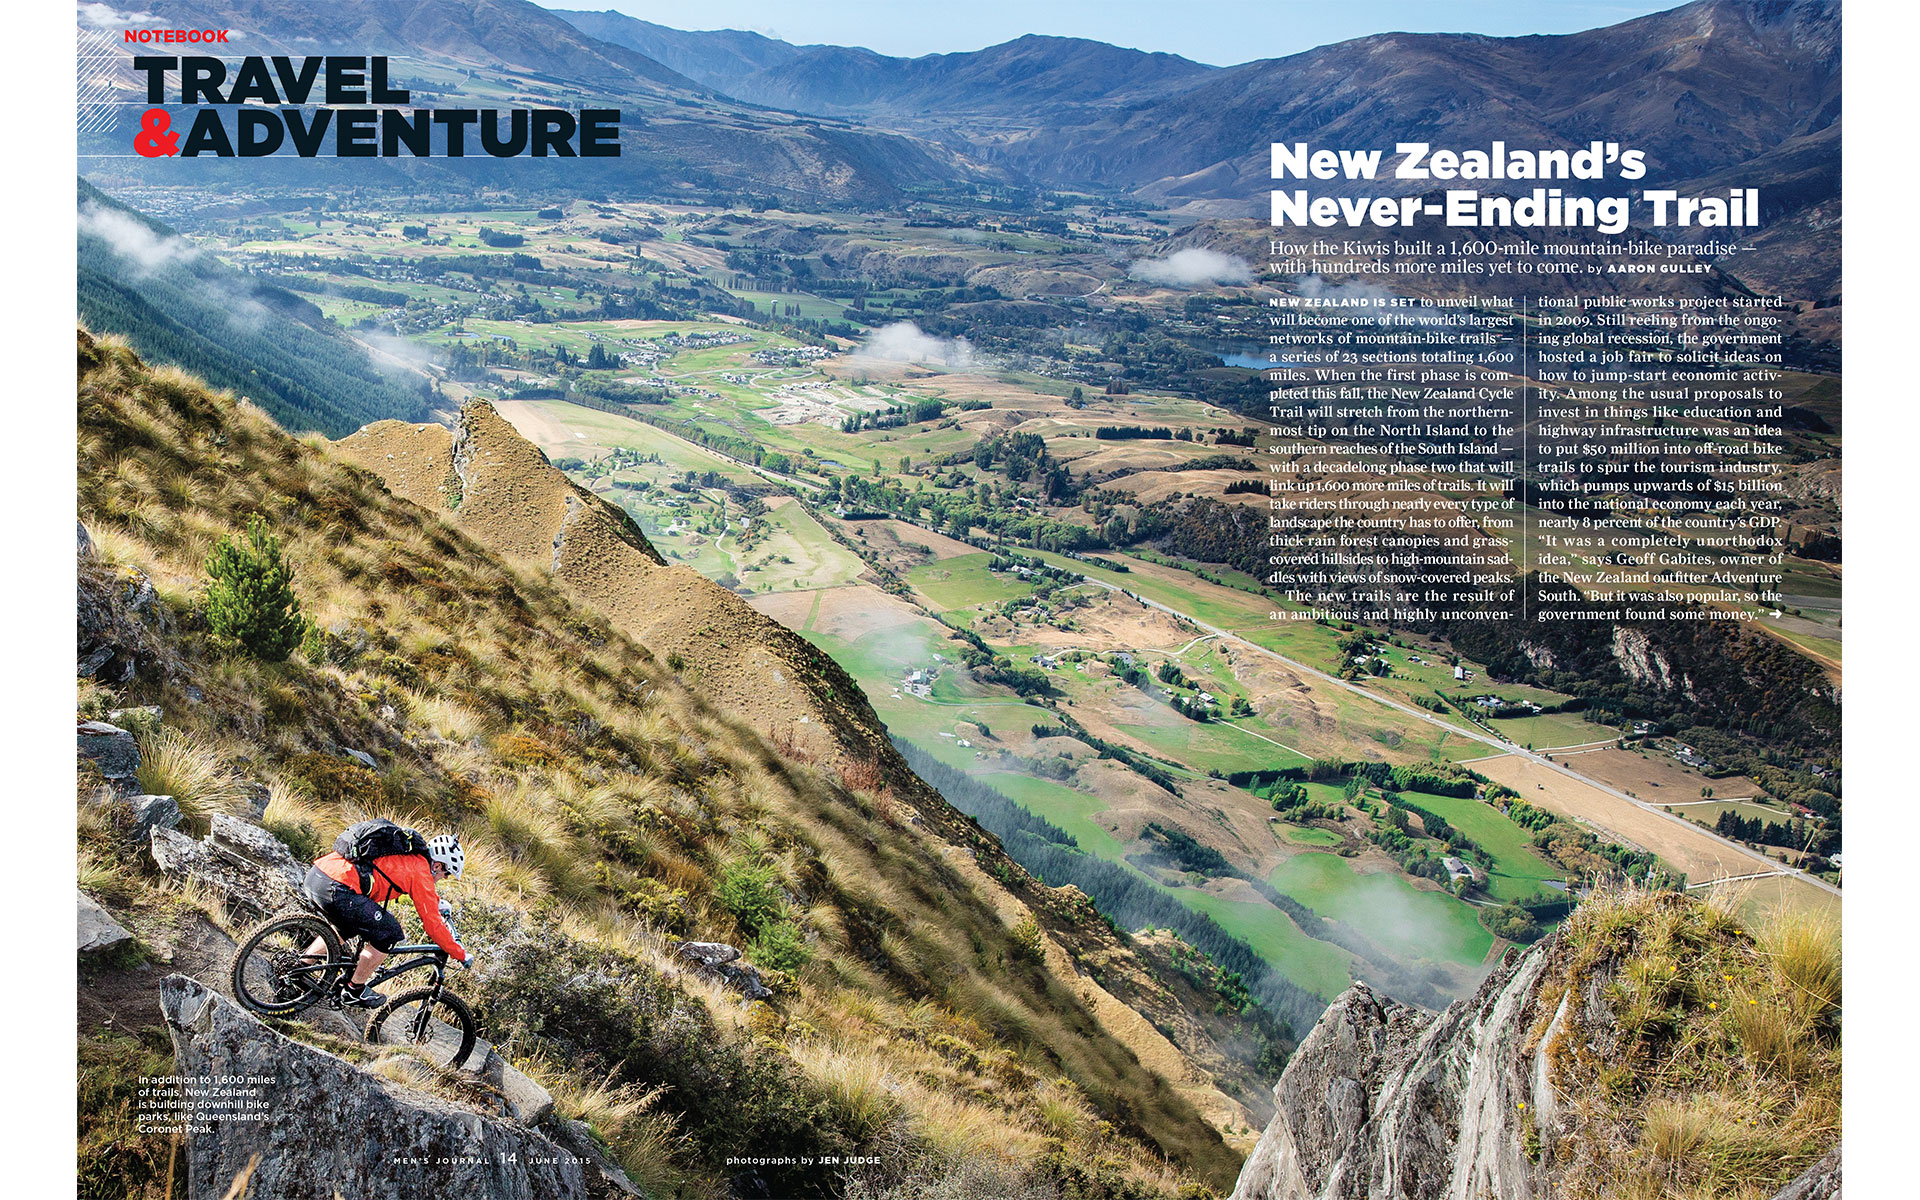 "<p style=""text-align: center;""><b><font color=""2a2871"">The Never-Ending Trail, Mens Journal, June 2015</font></b>